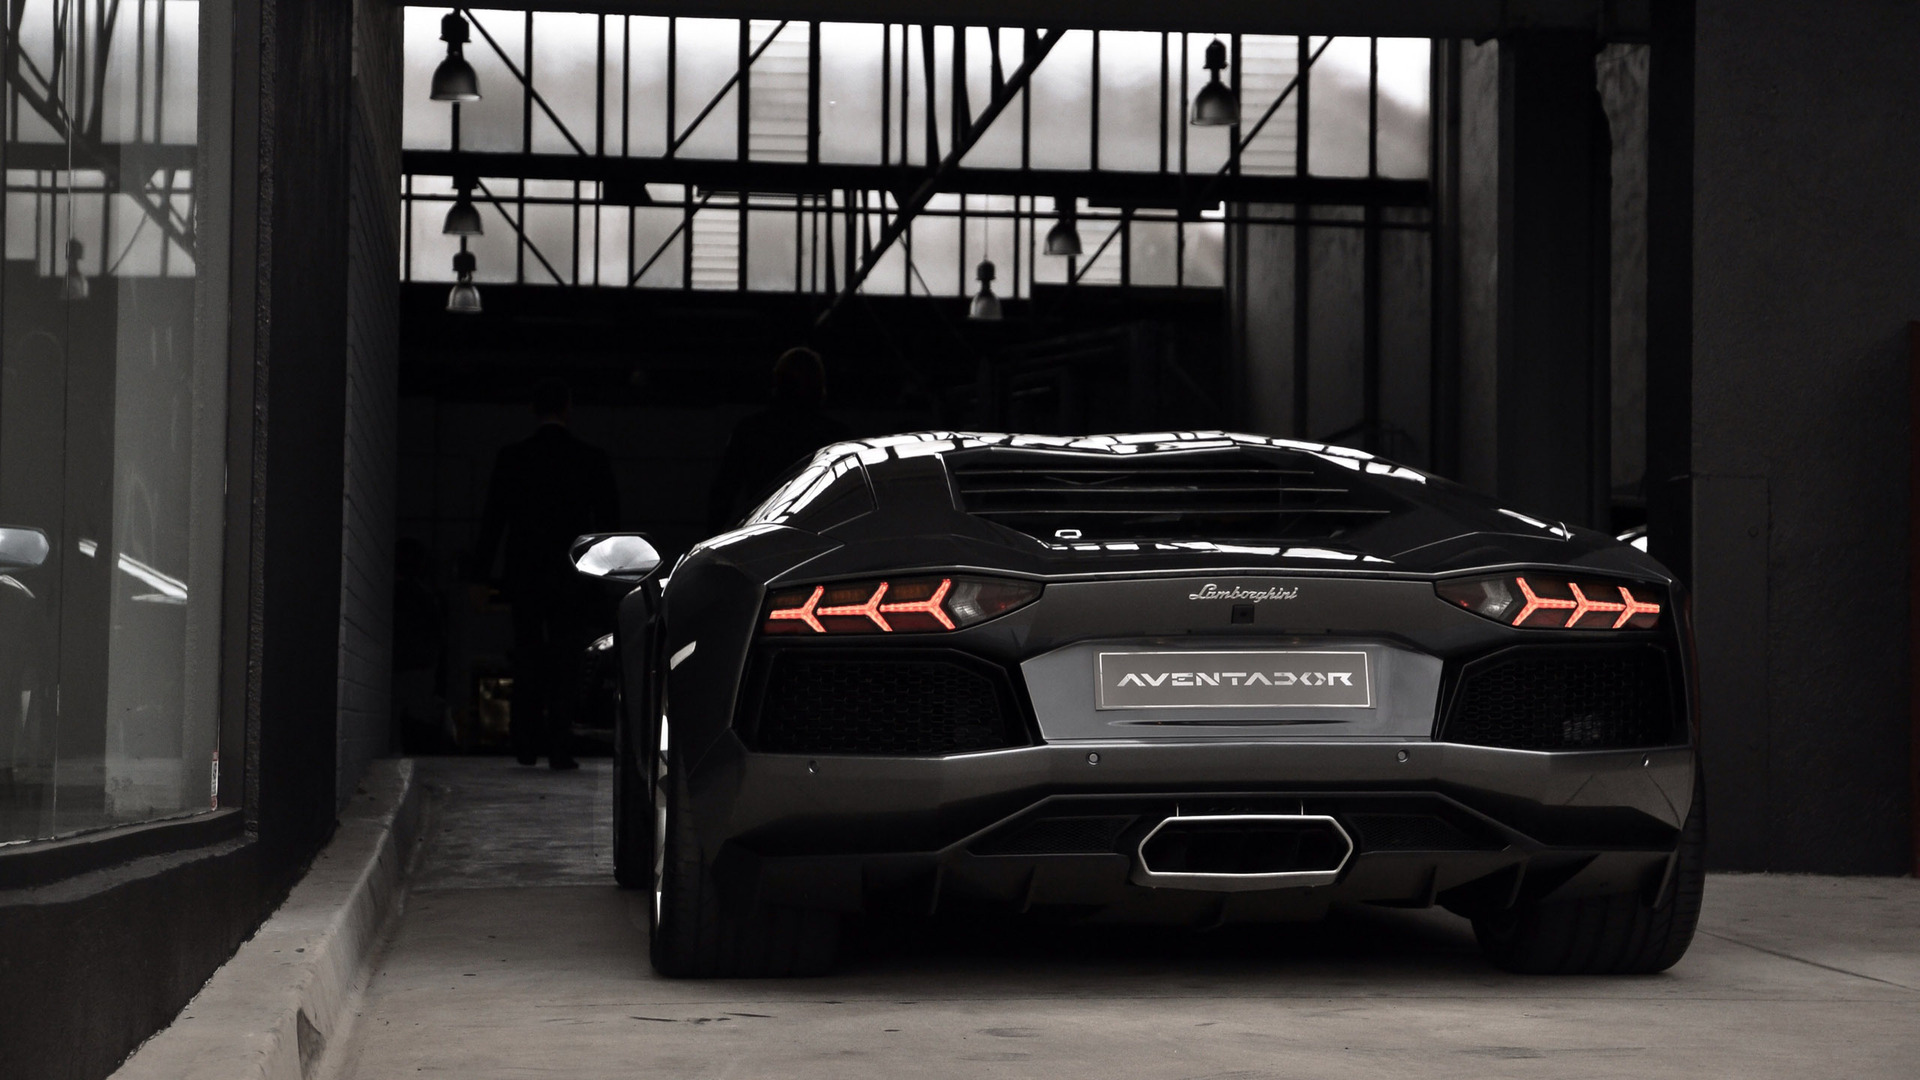 Lamborghini Aventador Rear Car Hd Wallpaper 1822